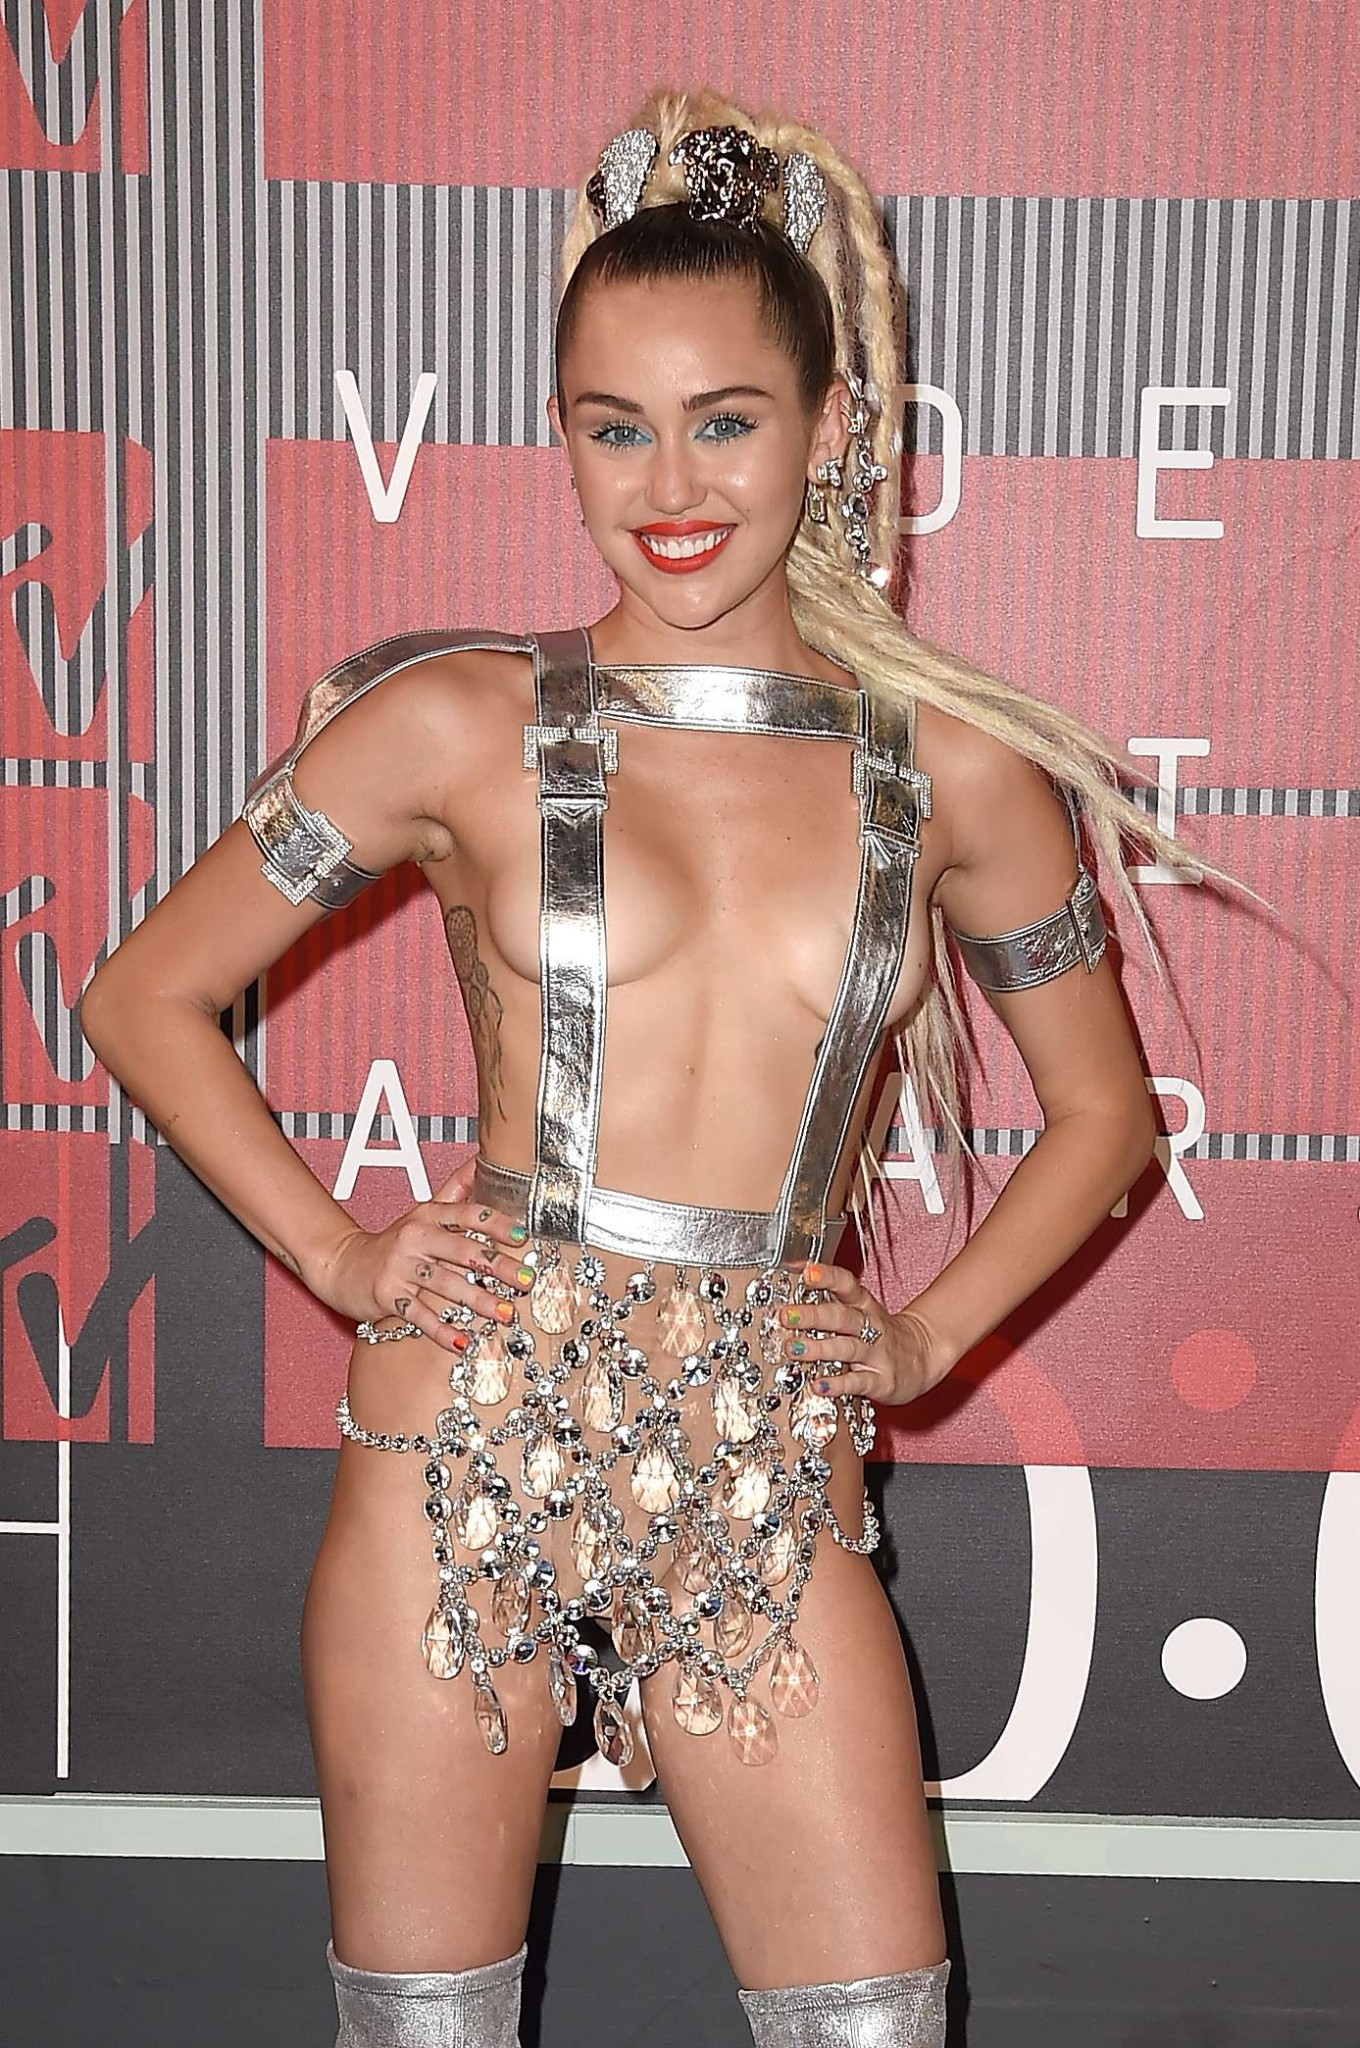 Too hot miley cyrus sexy pictures god